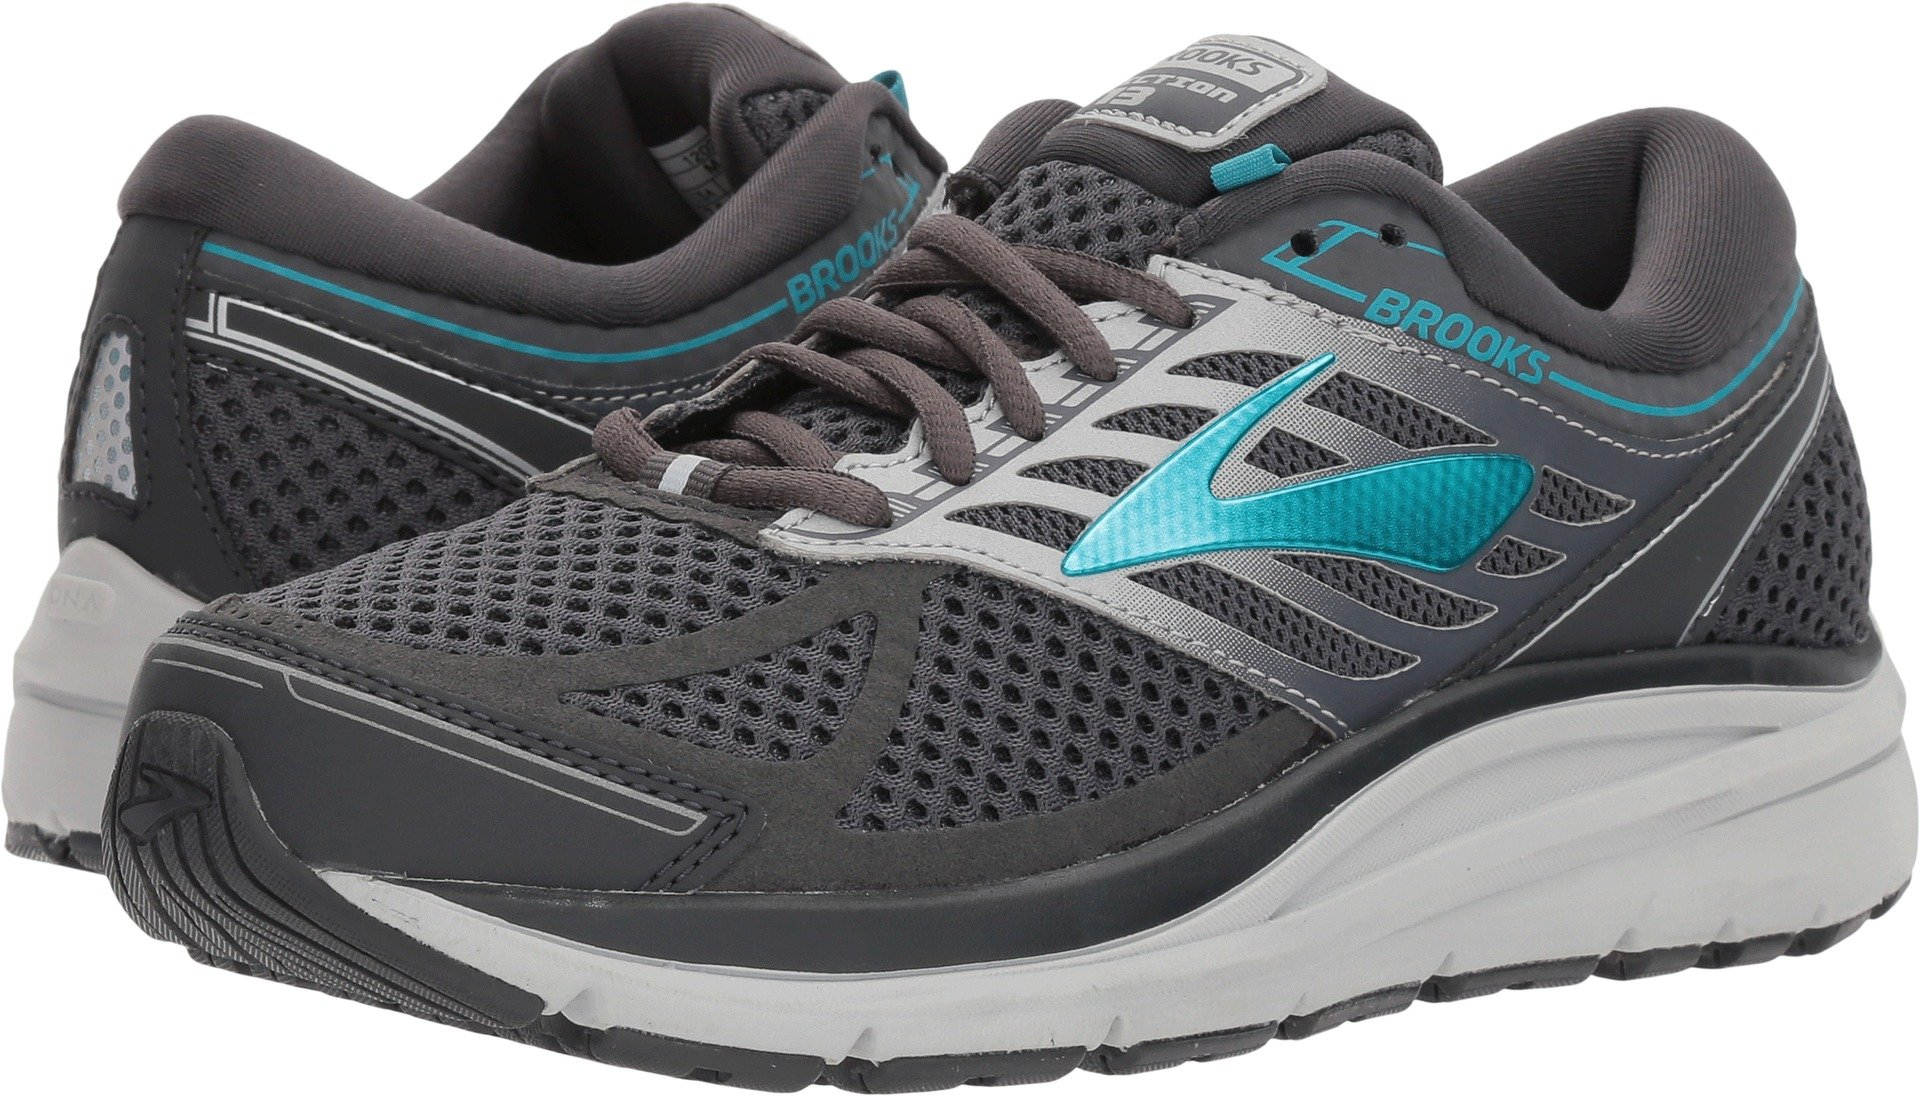 Brooks Women's Addiction 13 Ebony/Silver/Pagoda Blue 9 D US by Brooks